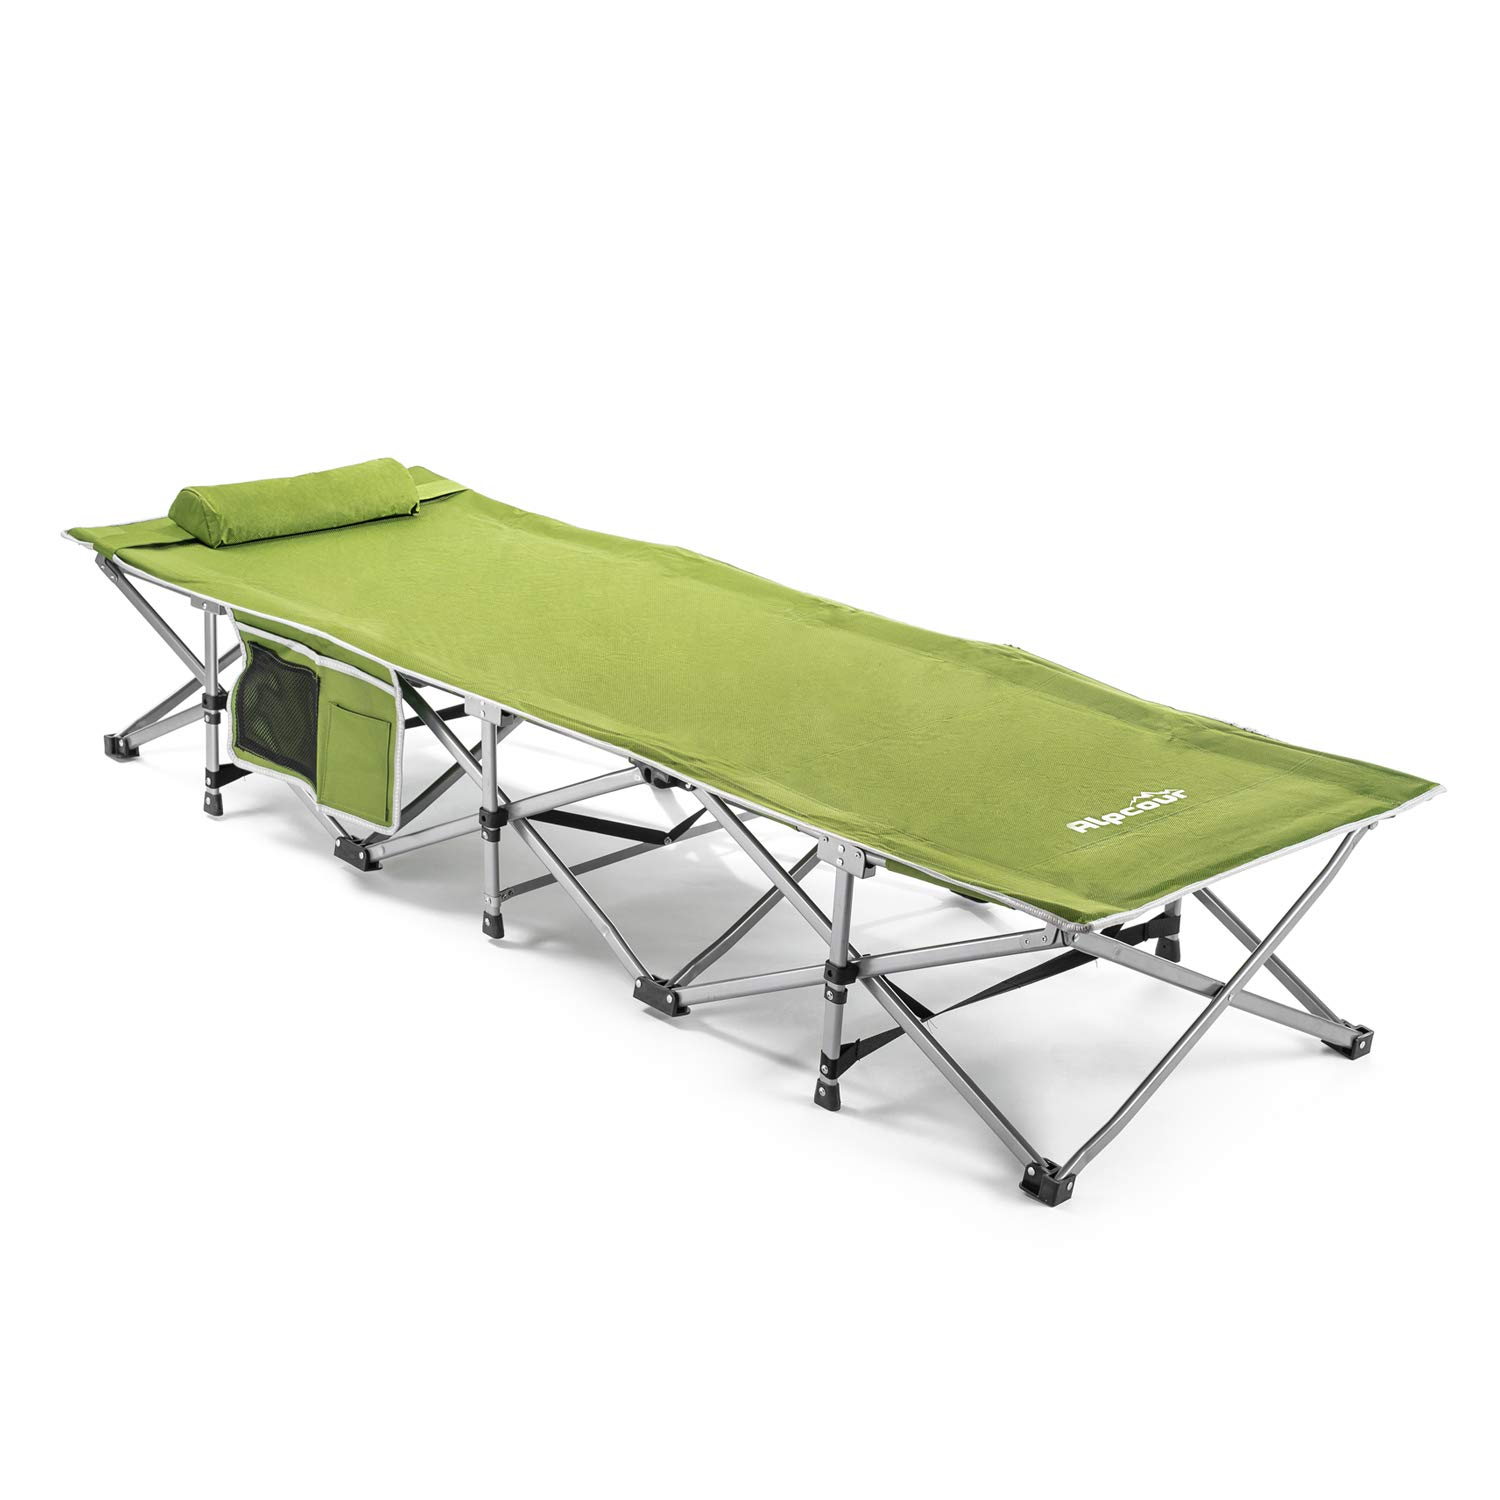 Alpcour Folding Camping Cot - Small-Collapsing Extra Strong Single Person Bed in a Bag w/Pillow for Indoor & Outdoor Use - Deluxe Comfortable Extra Heavy Duty Design Holds Adults & Kids Up to 440 Lb by Alpcour